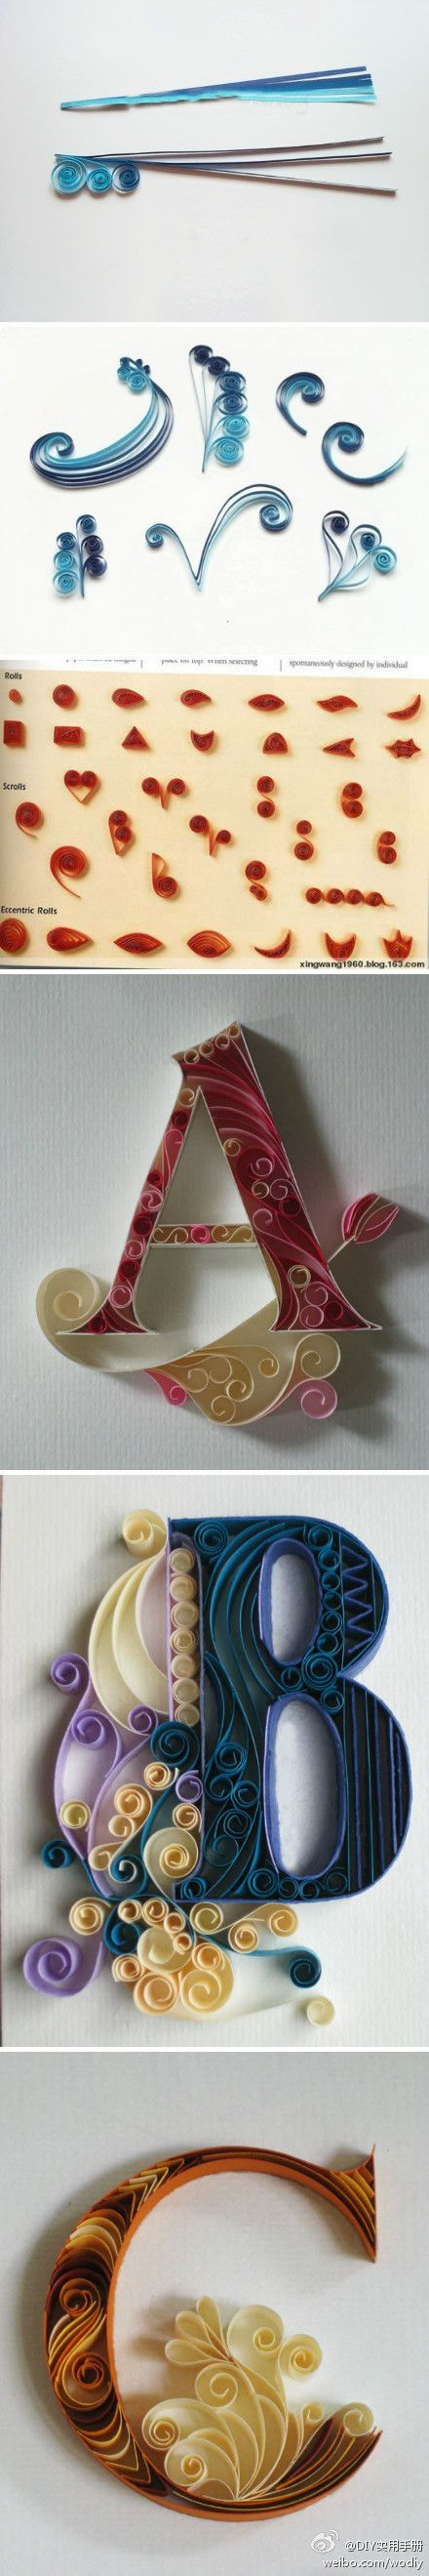 quilling...need to learn to do this!